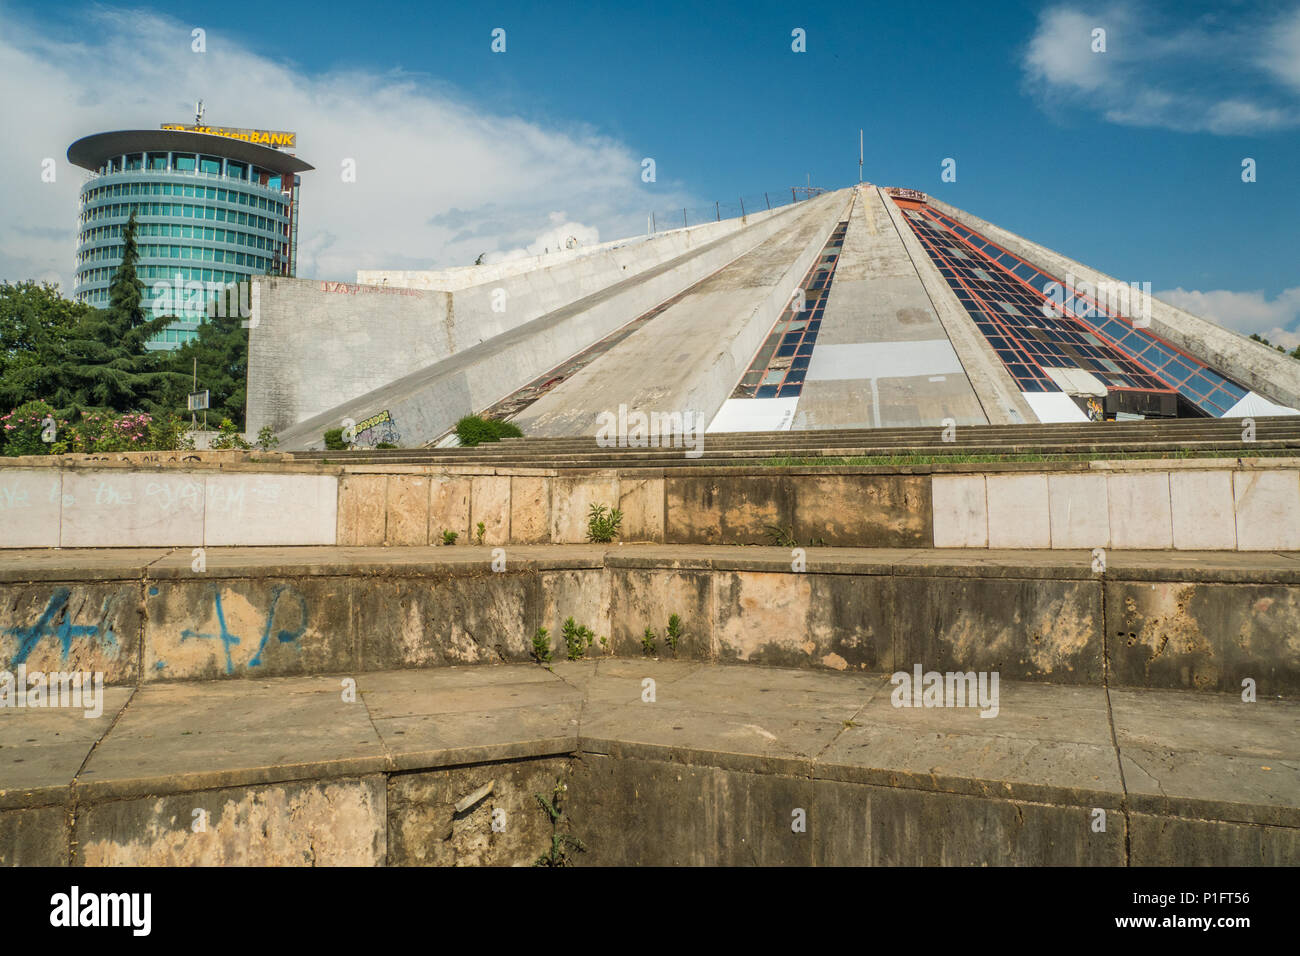 People having fun at the 'Pyramid' of Tirana, an unusual building and formerly the Enver Hoxha Museum. Albania - Stock Image